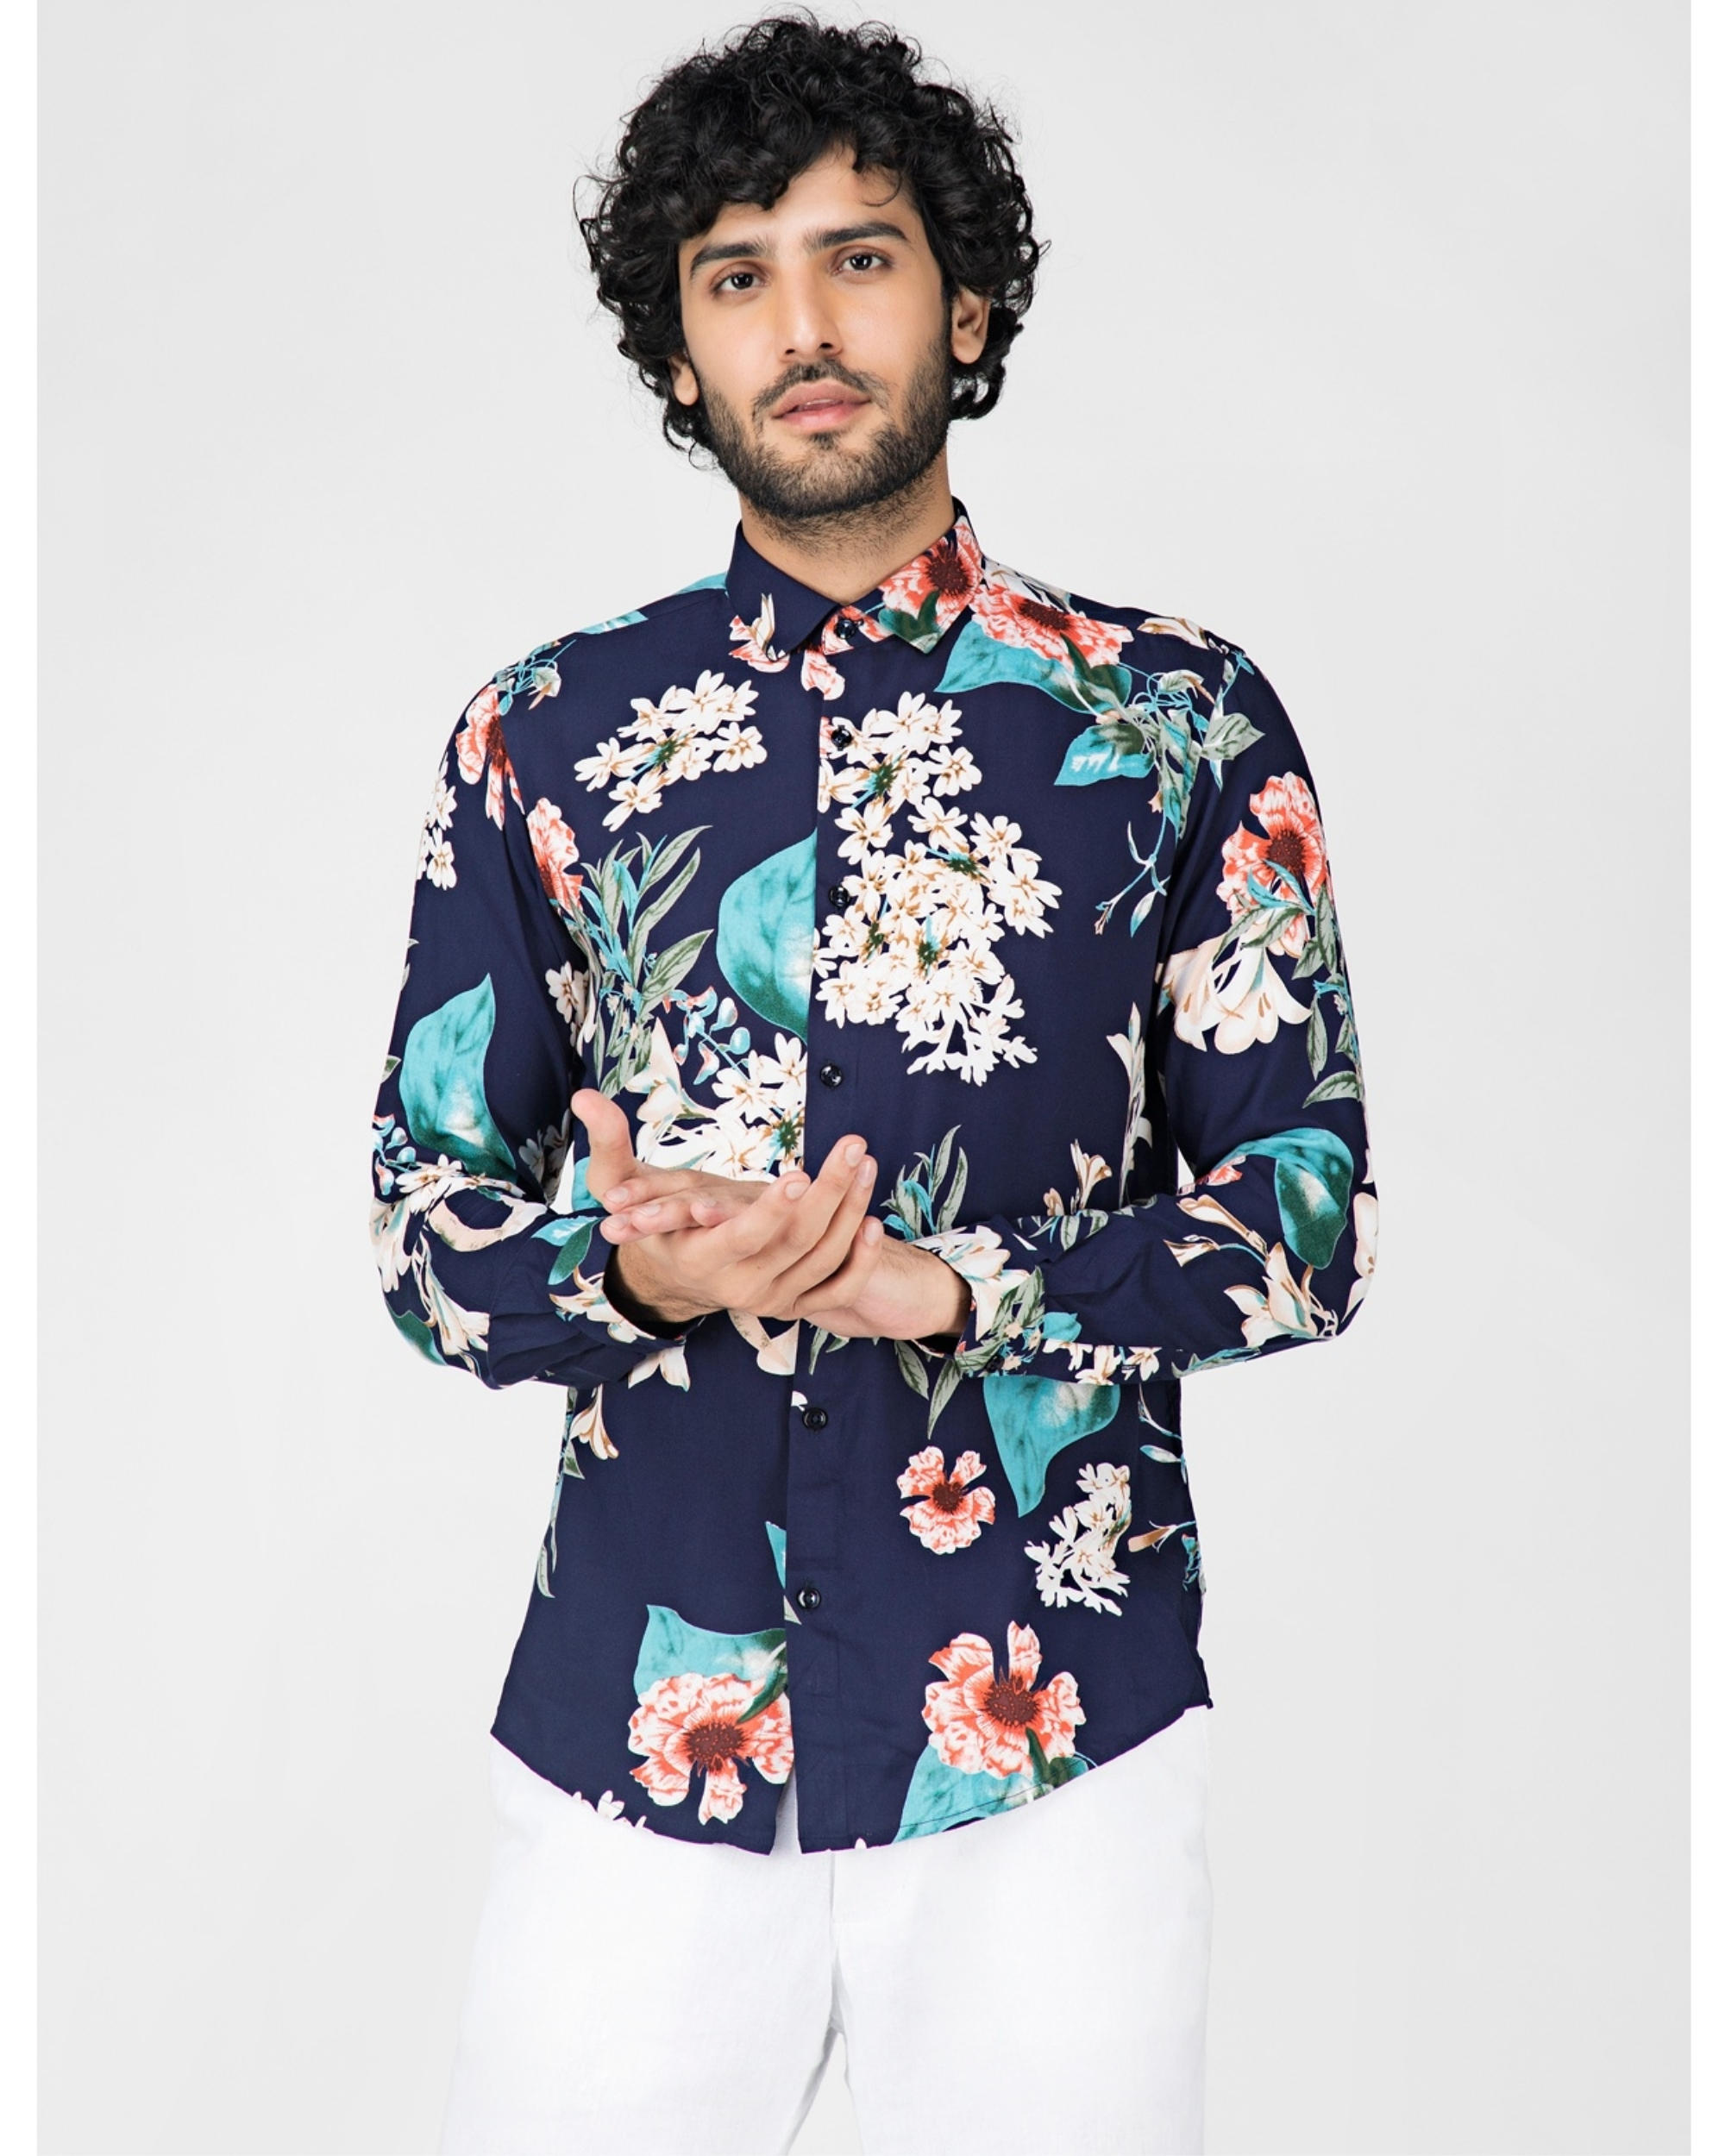 Blue and white floral printed casual shirt